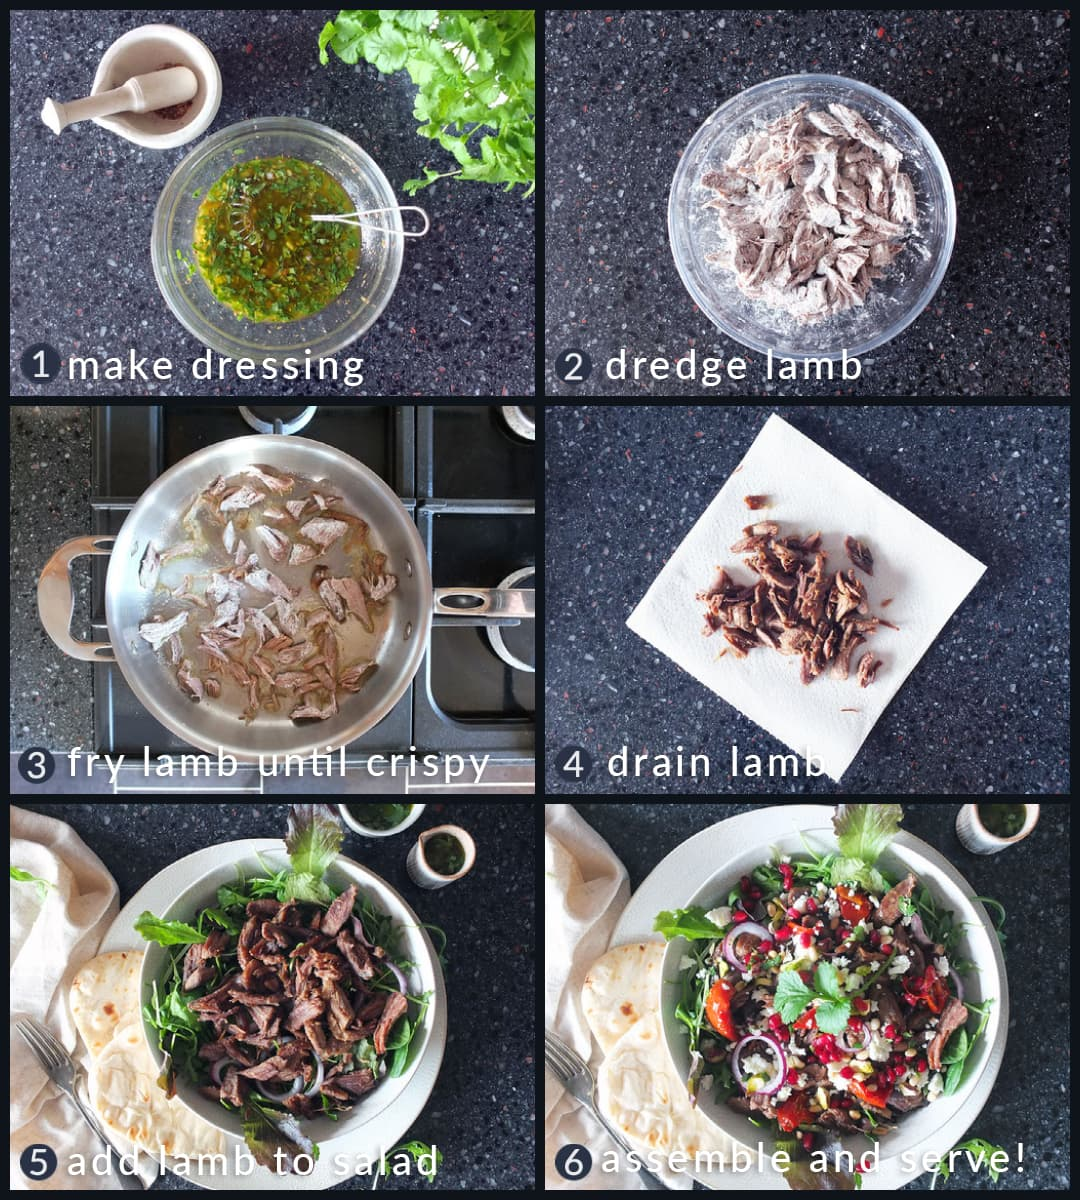 Six step collage image depicting how to make a crispy lamb salad.